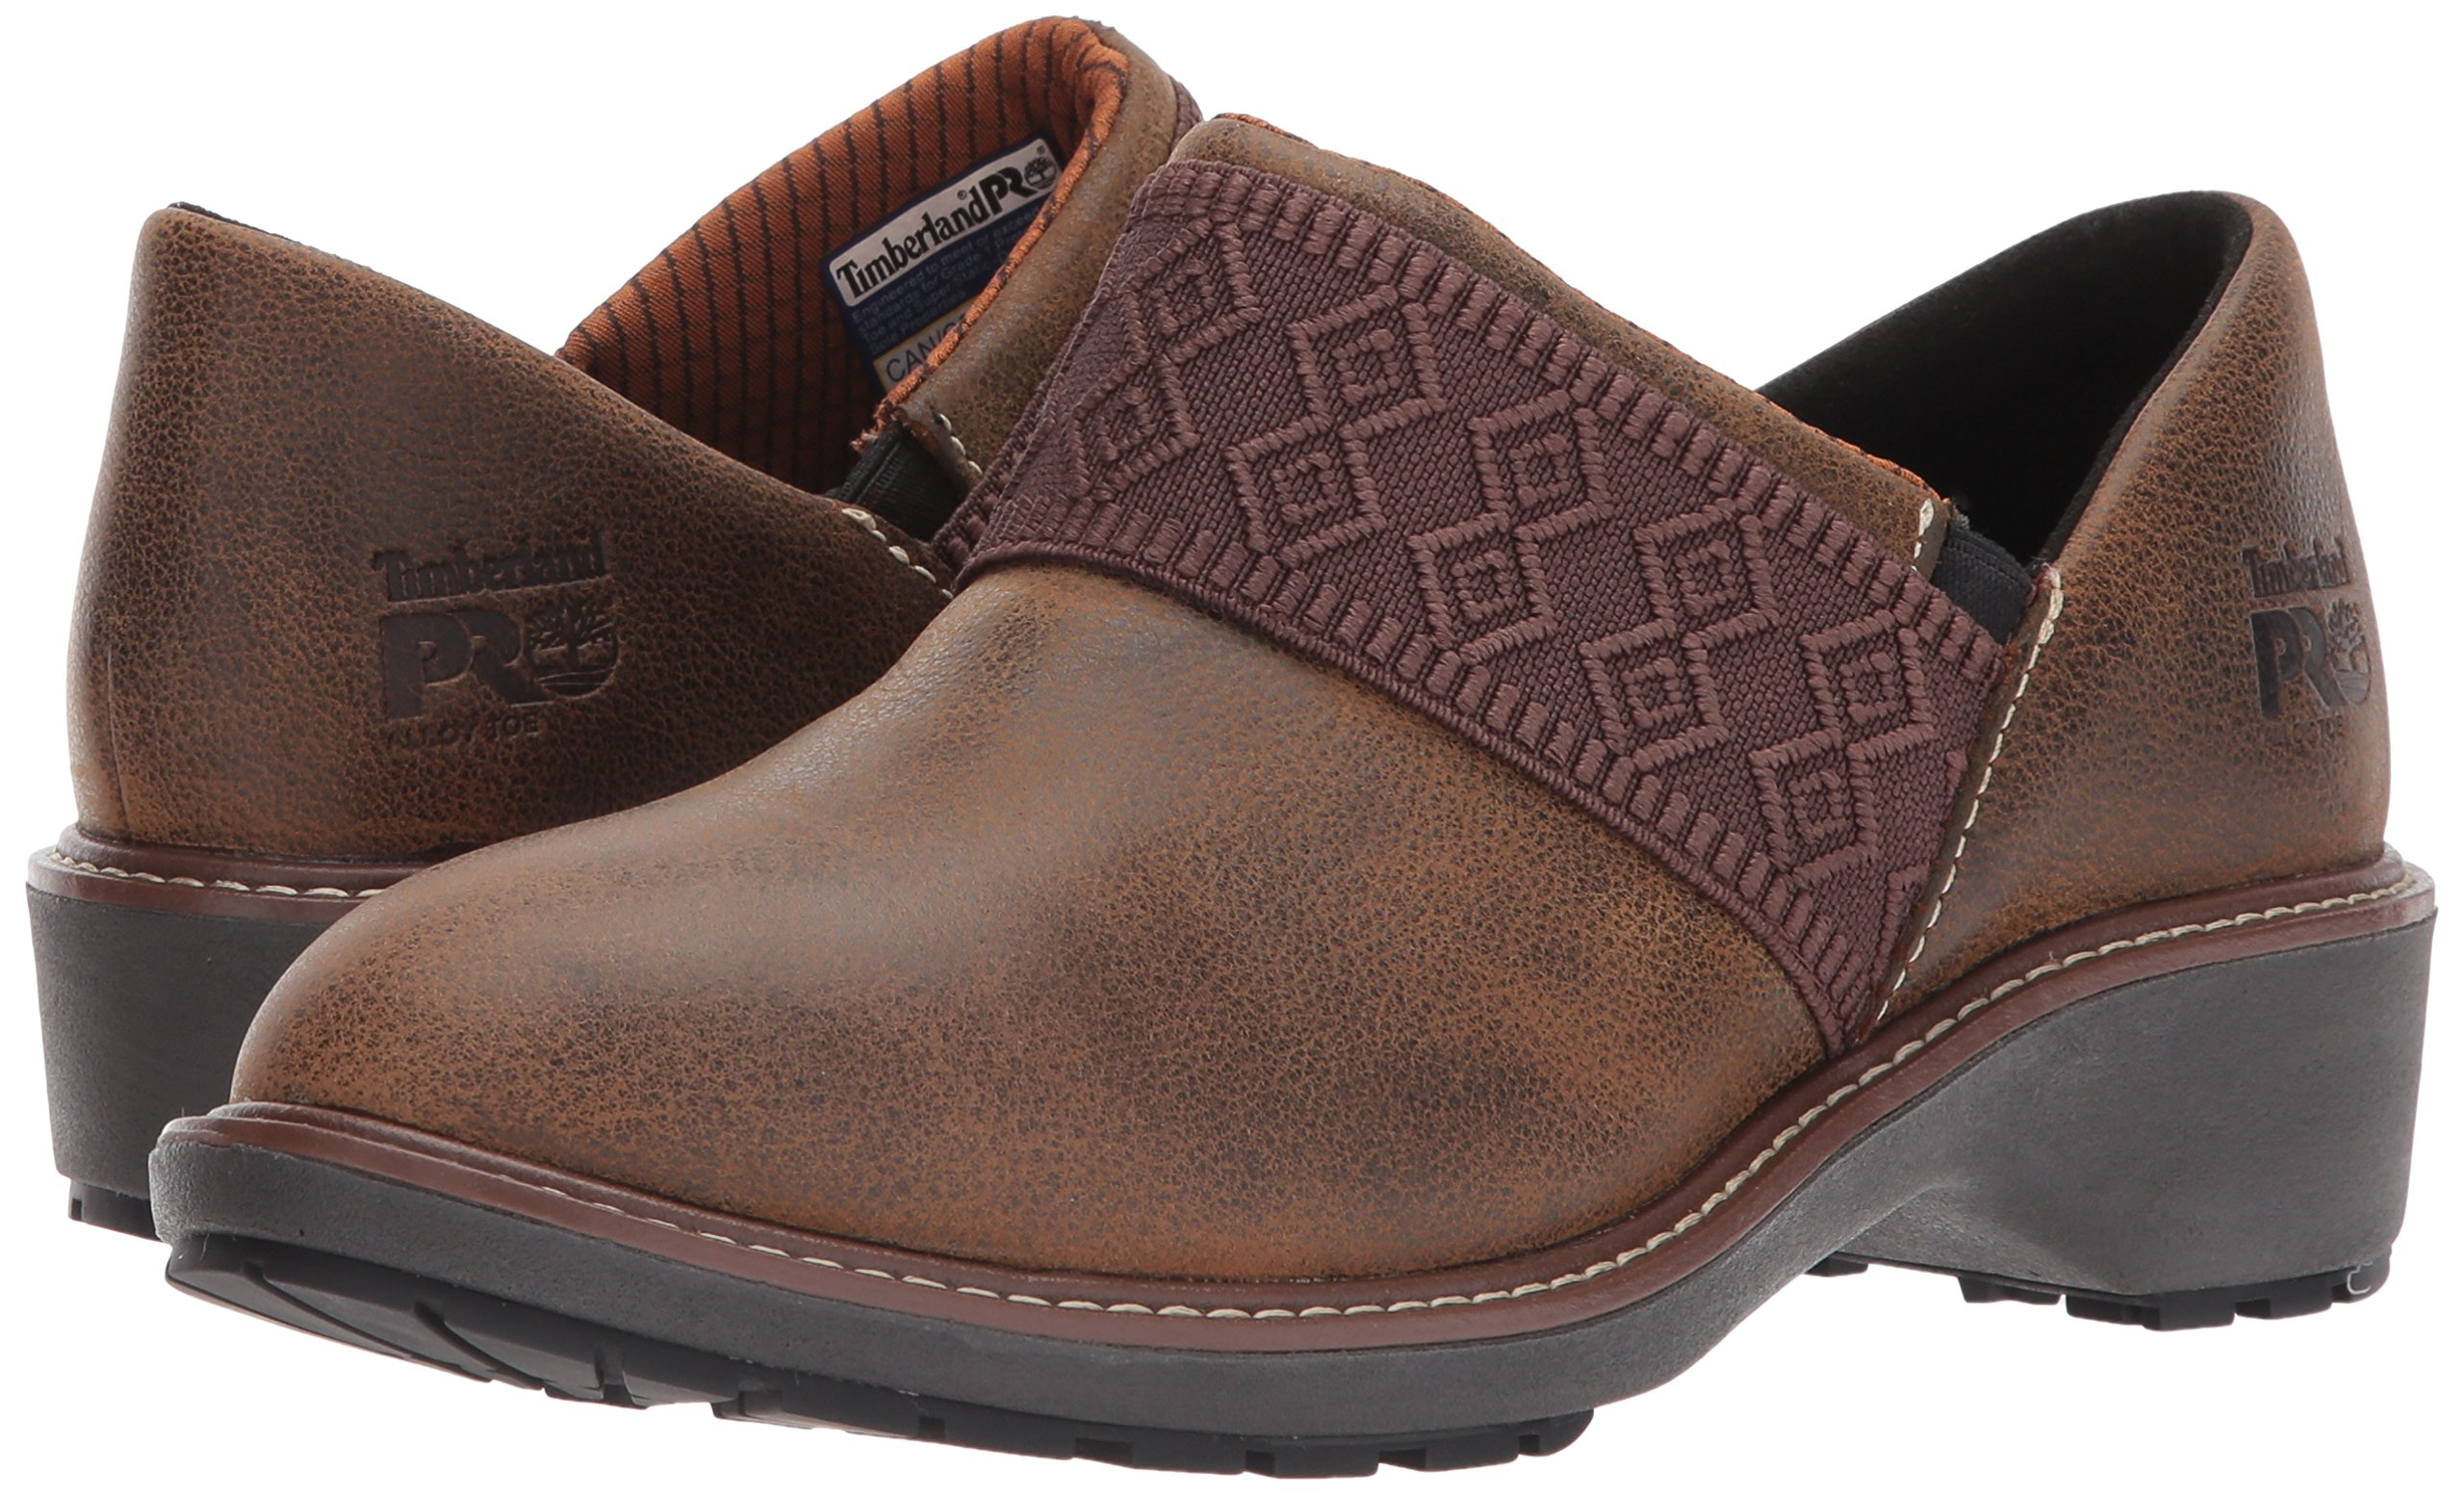 Timberland PRO Women's Riveter Alloy Toe SD+ Industrial and Construction Shoe, Dark Sudan Full Grain Leather, 7.5 M US by Timberland PRO (Image #6)